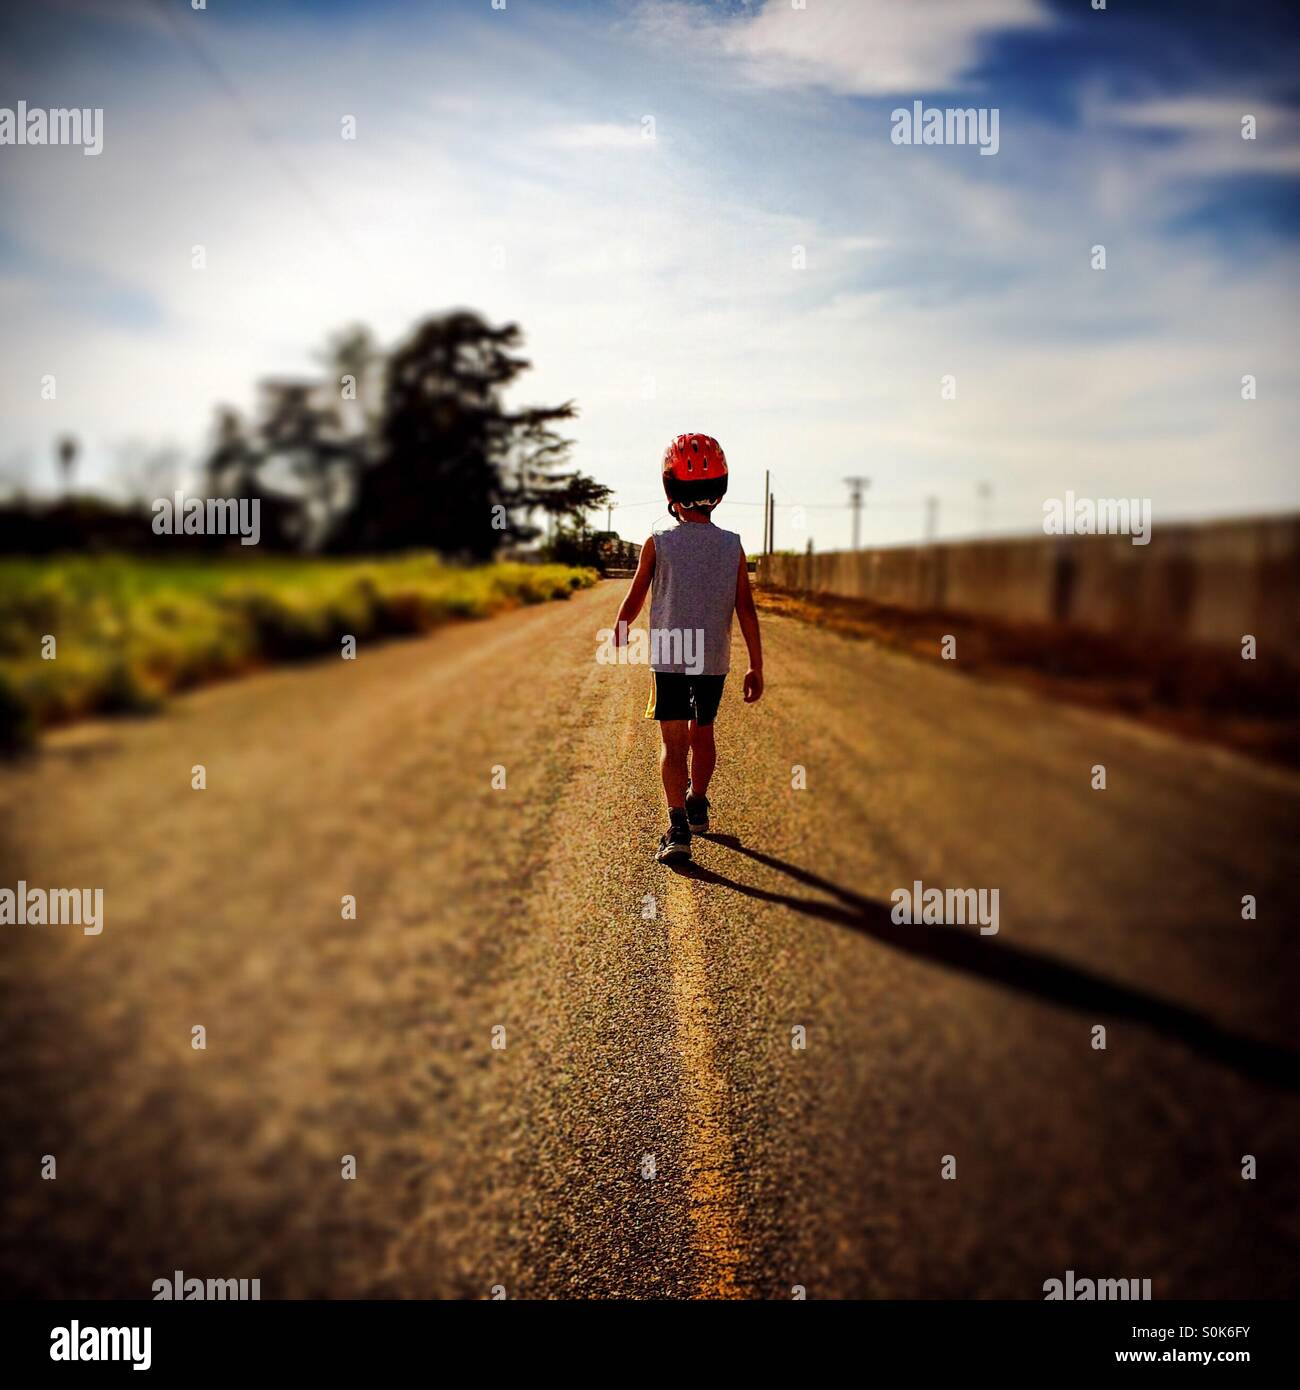 A 7 year old boy walks down the middle of a country road wearing his bicycle helmet. - Stock Image